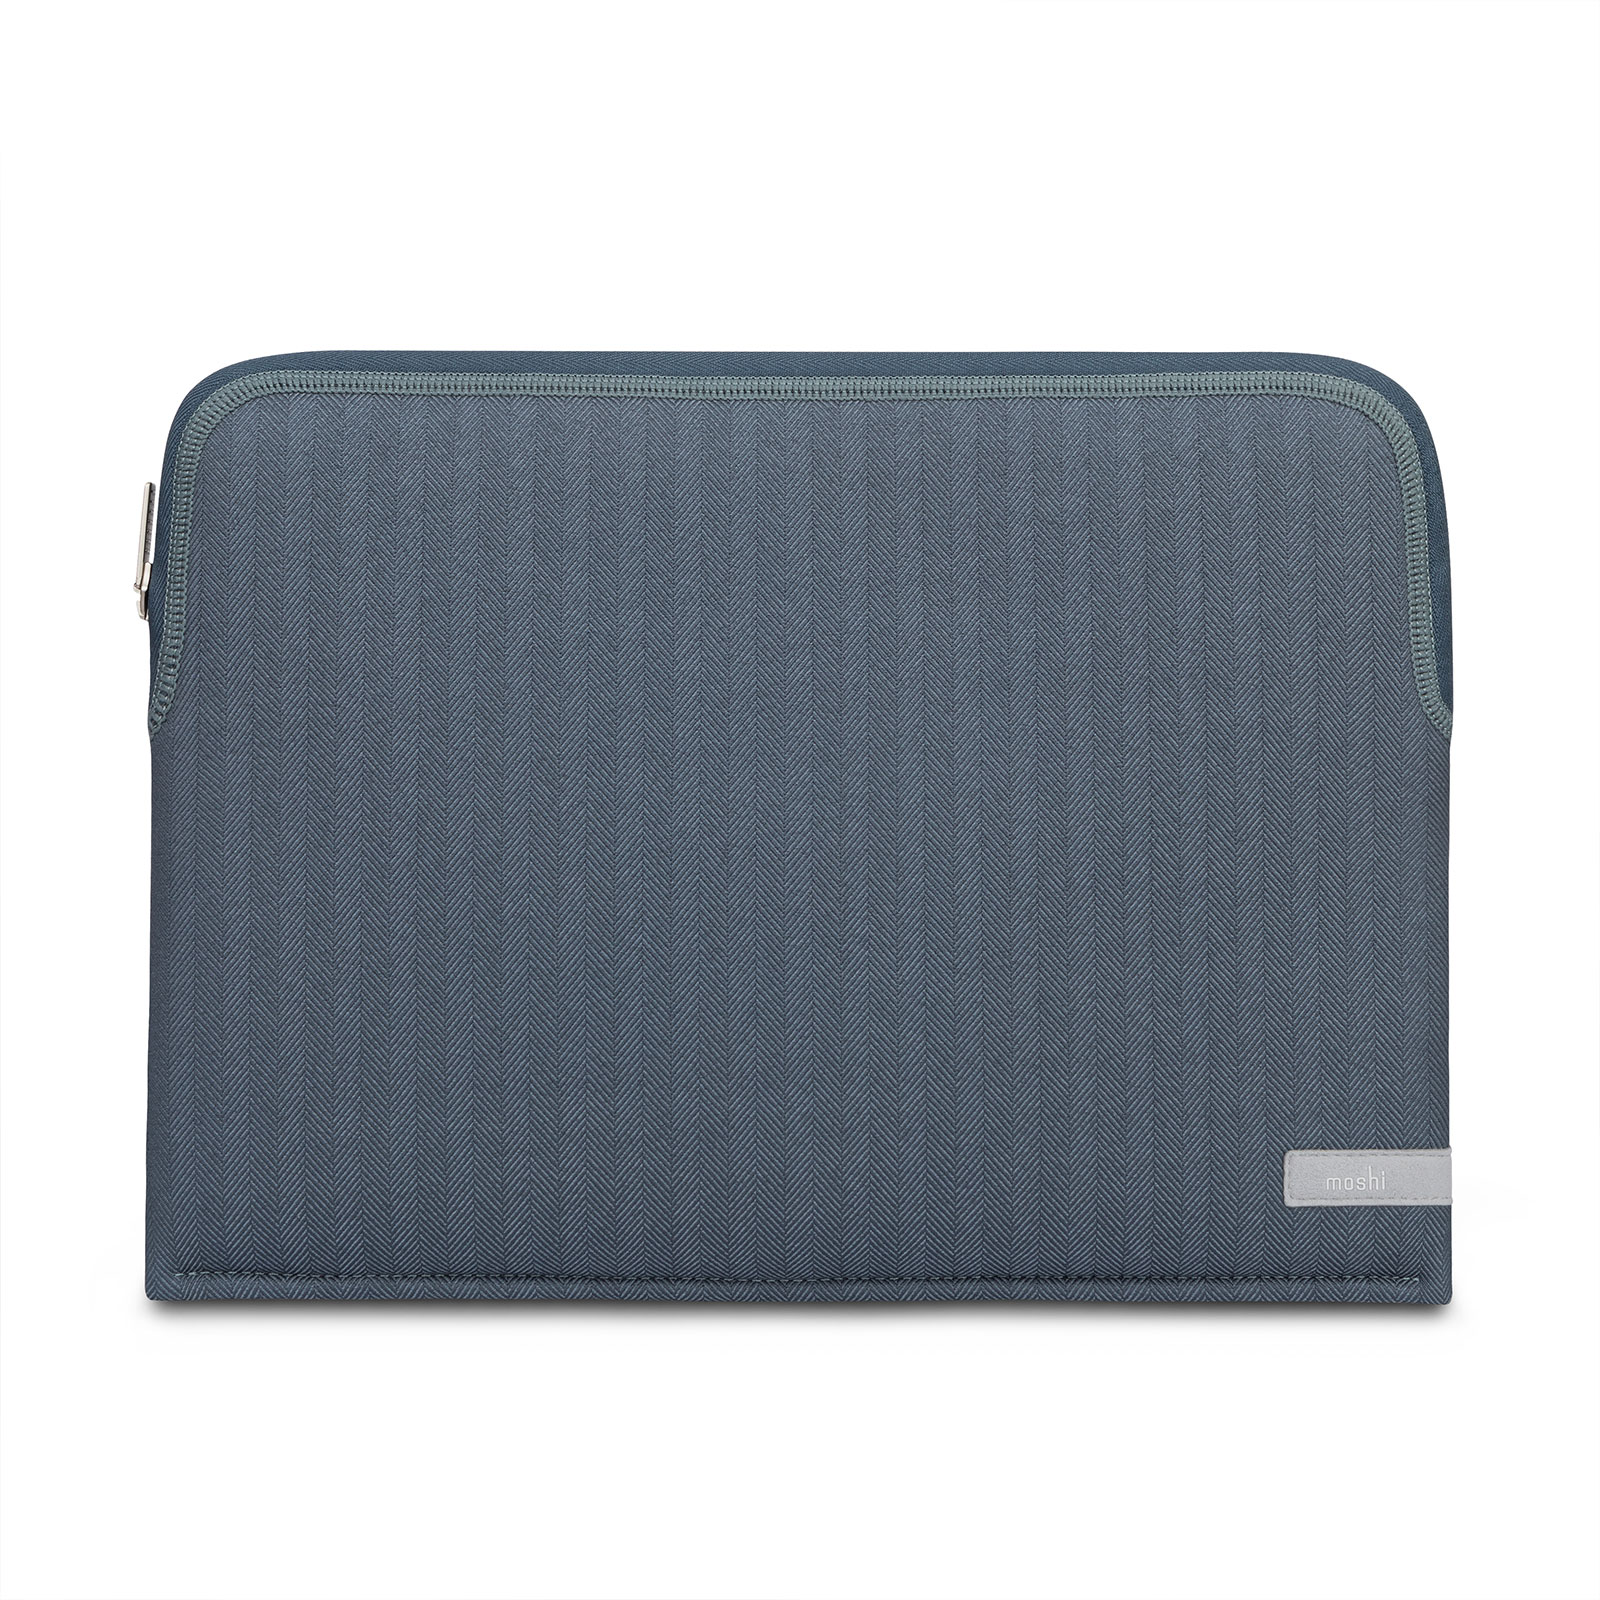 "Pluma 13"" Laptop Sleeve for MacBook-1-thumbnail"